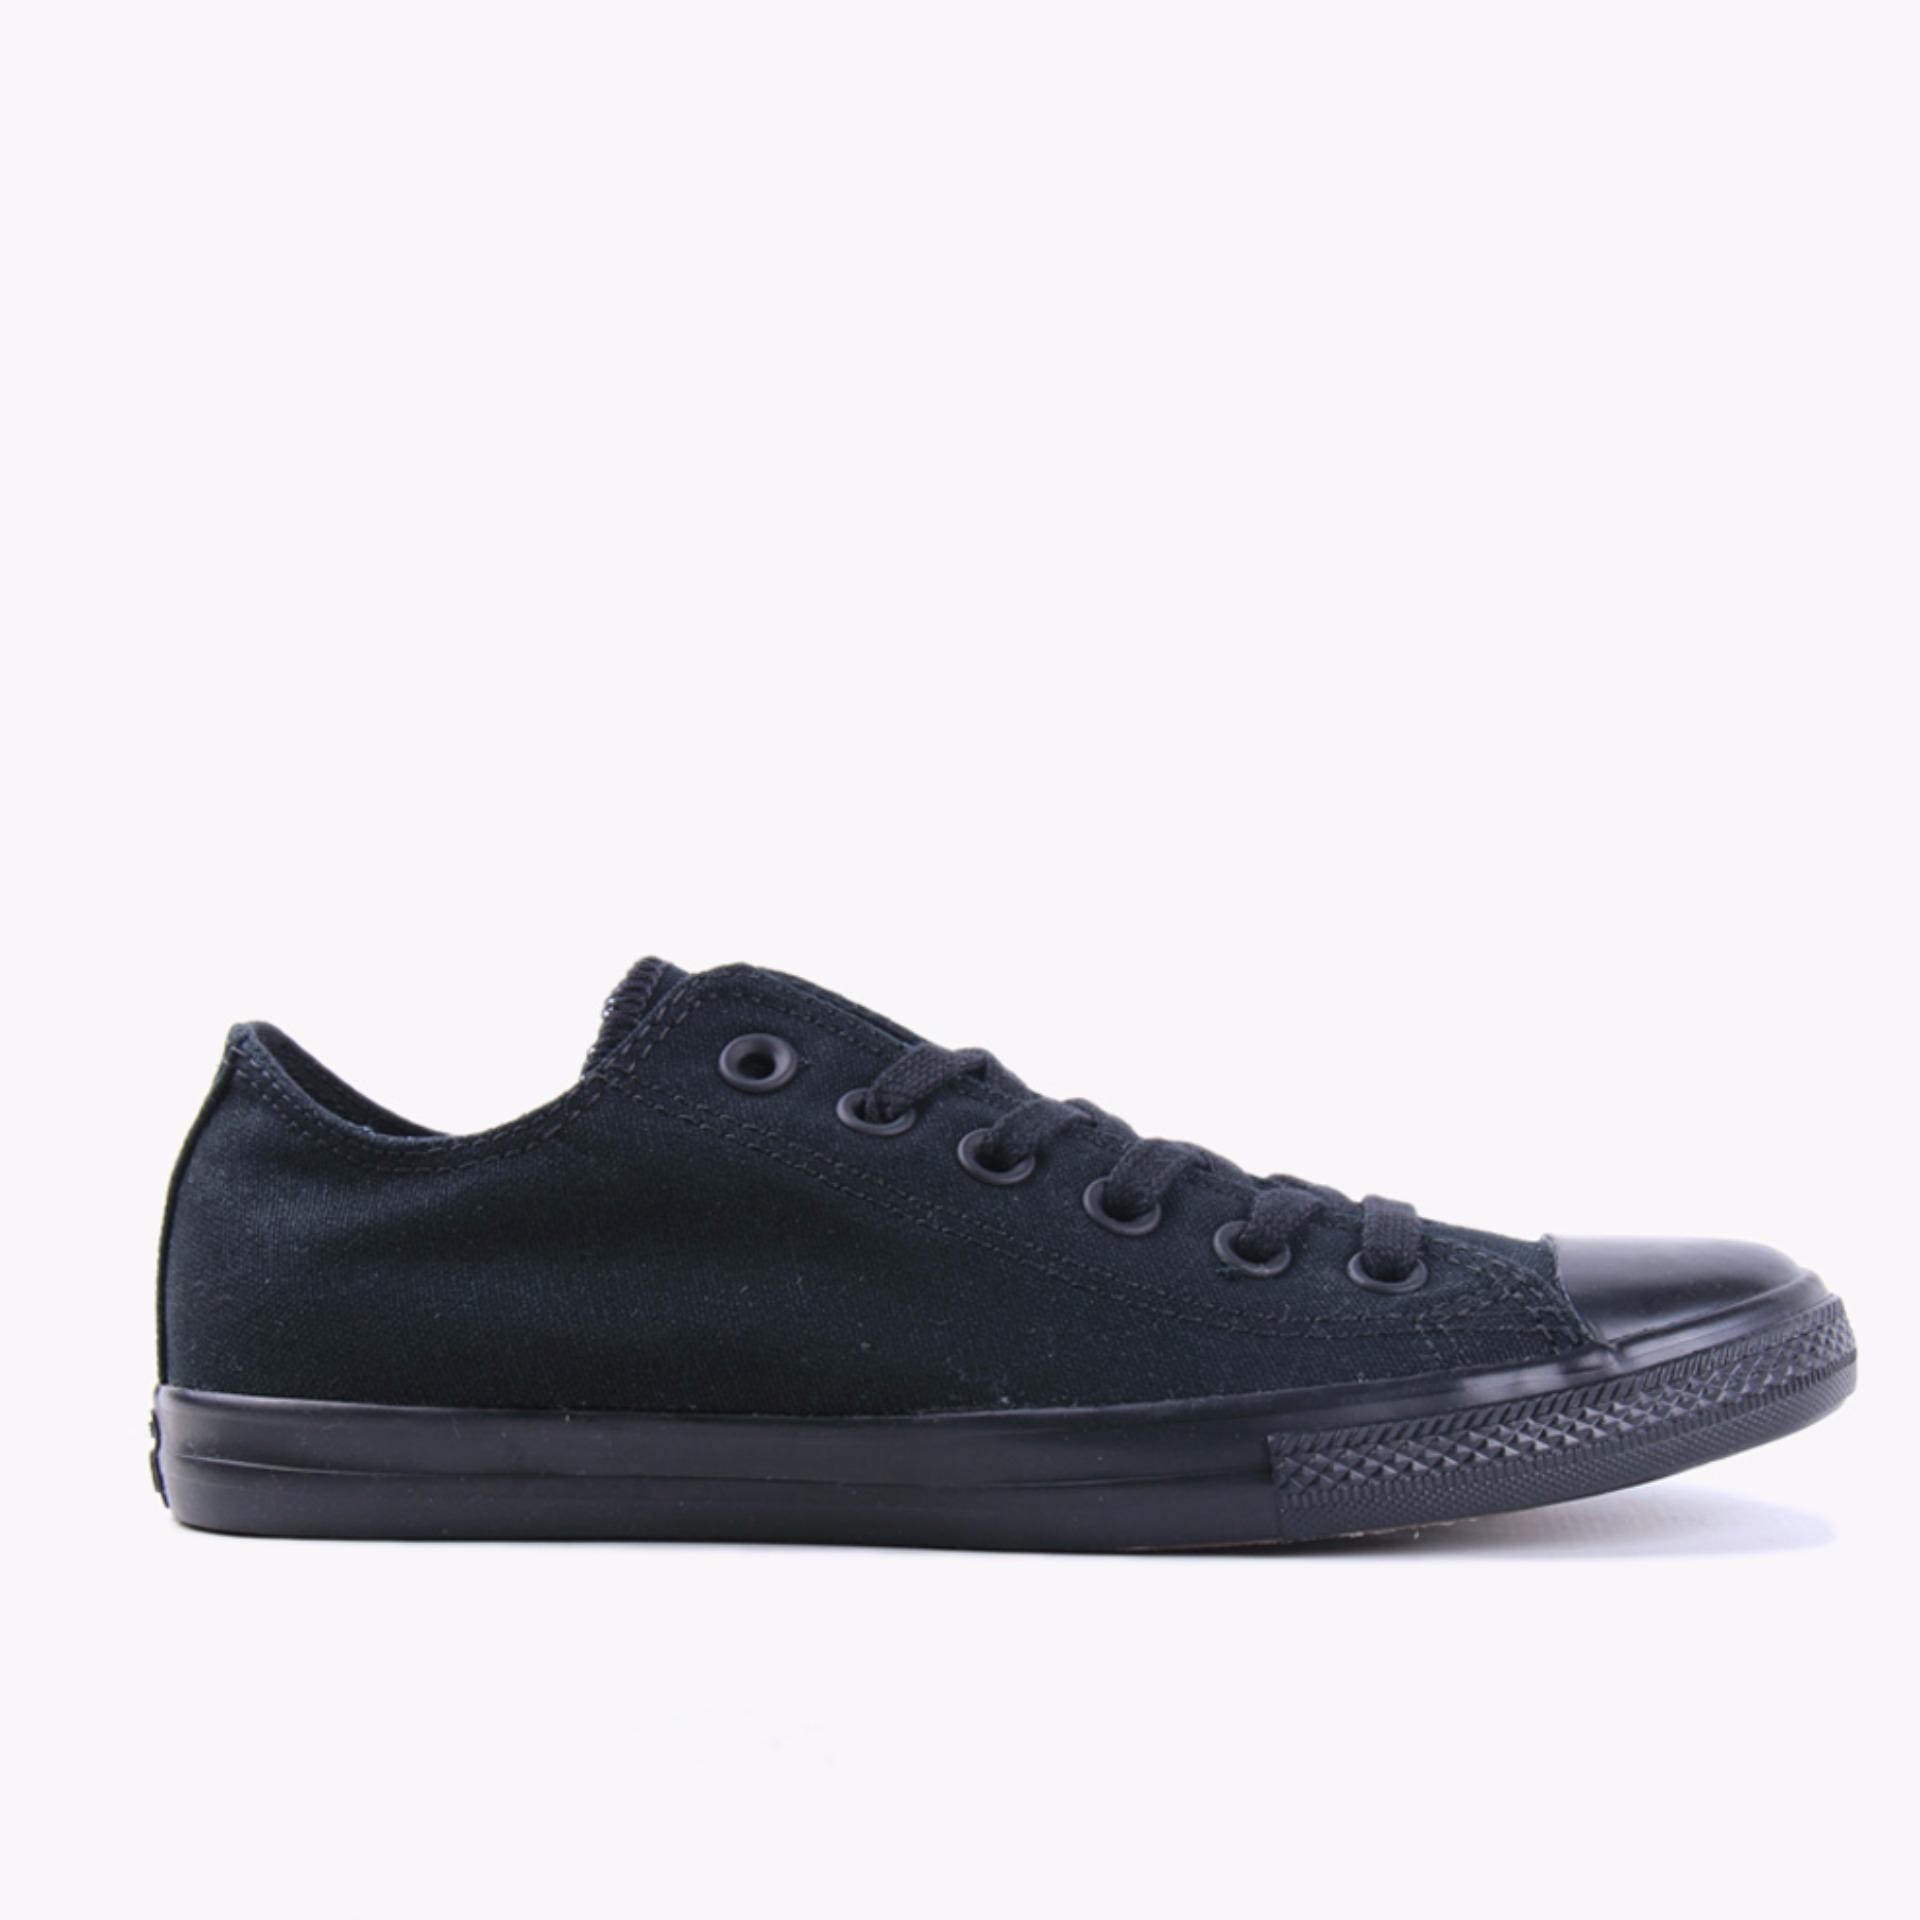 Jual Converse Chuck Taylor All Star Lean Black Original